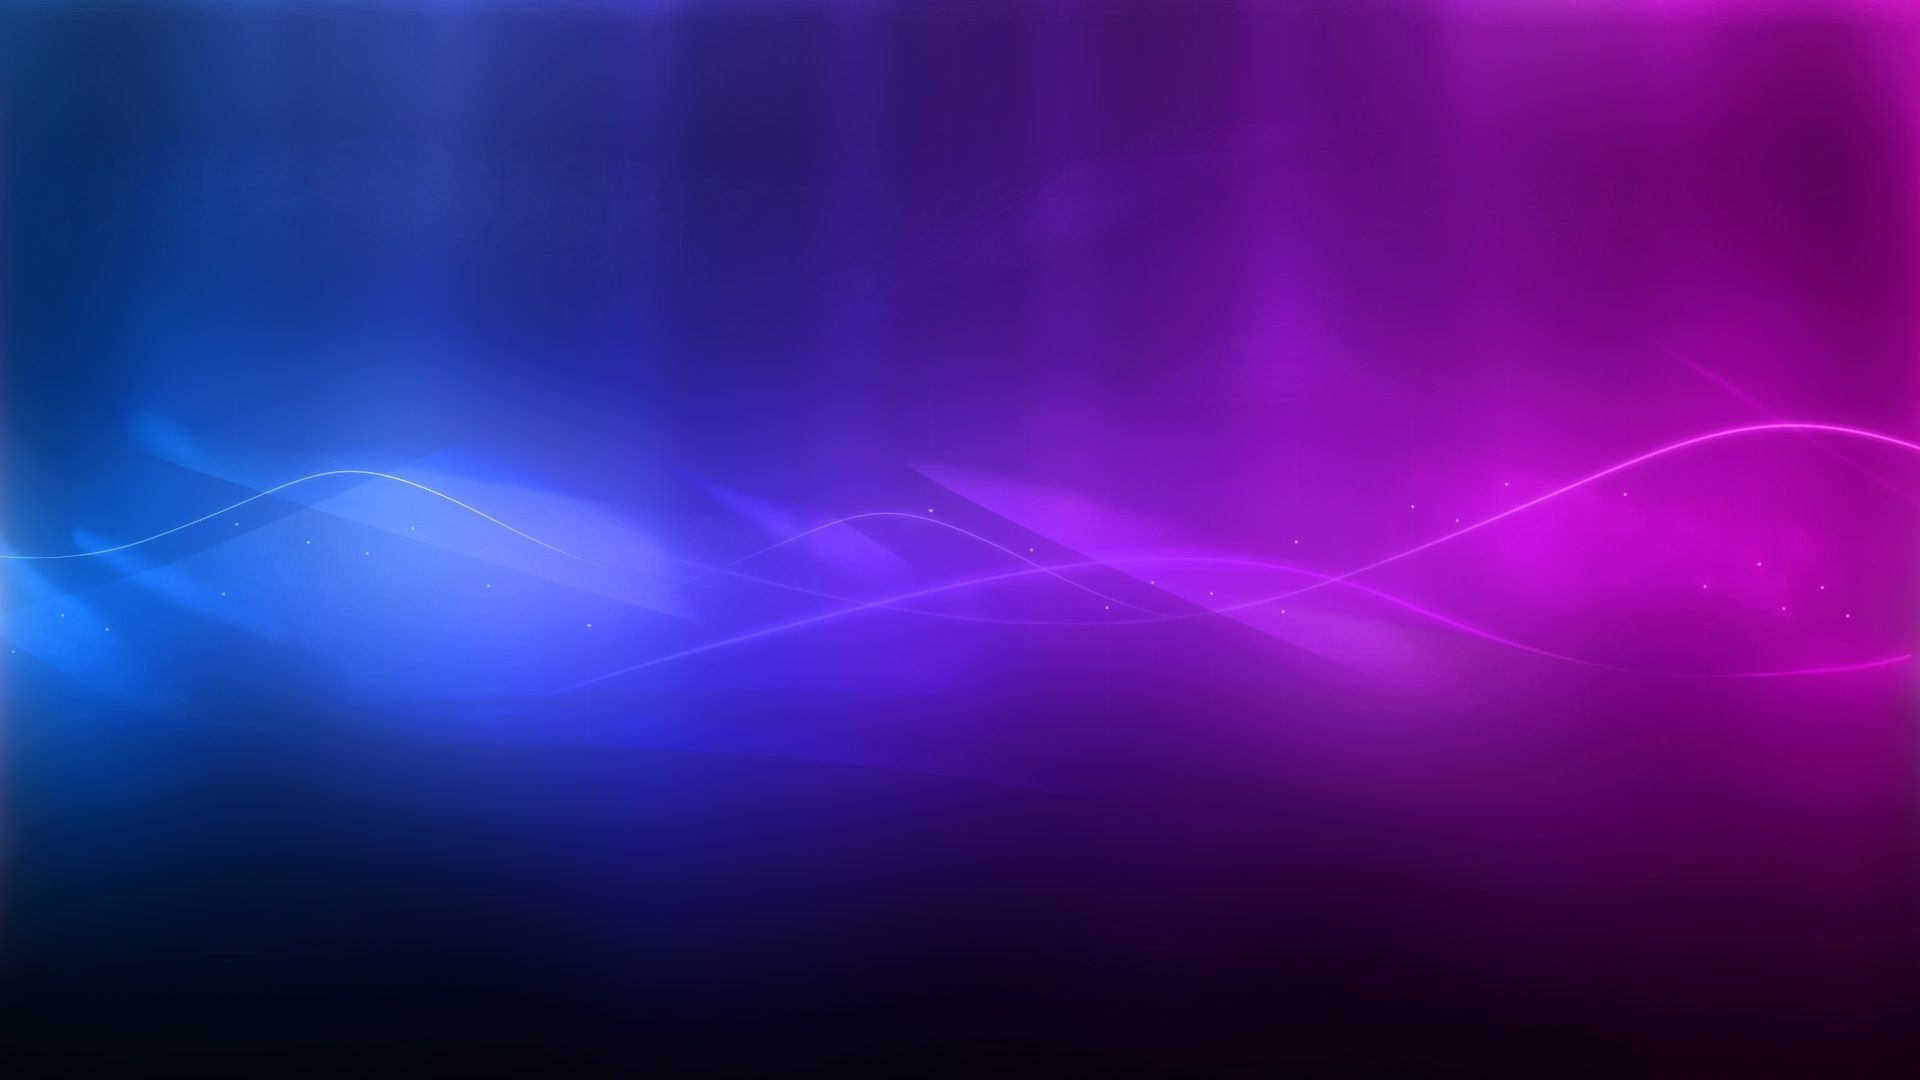 Pink And Blue Wallpaper image hd